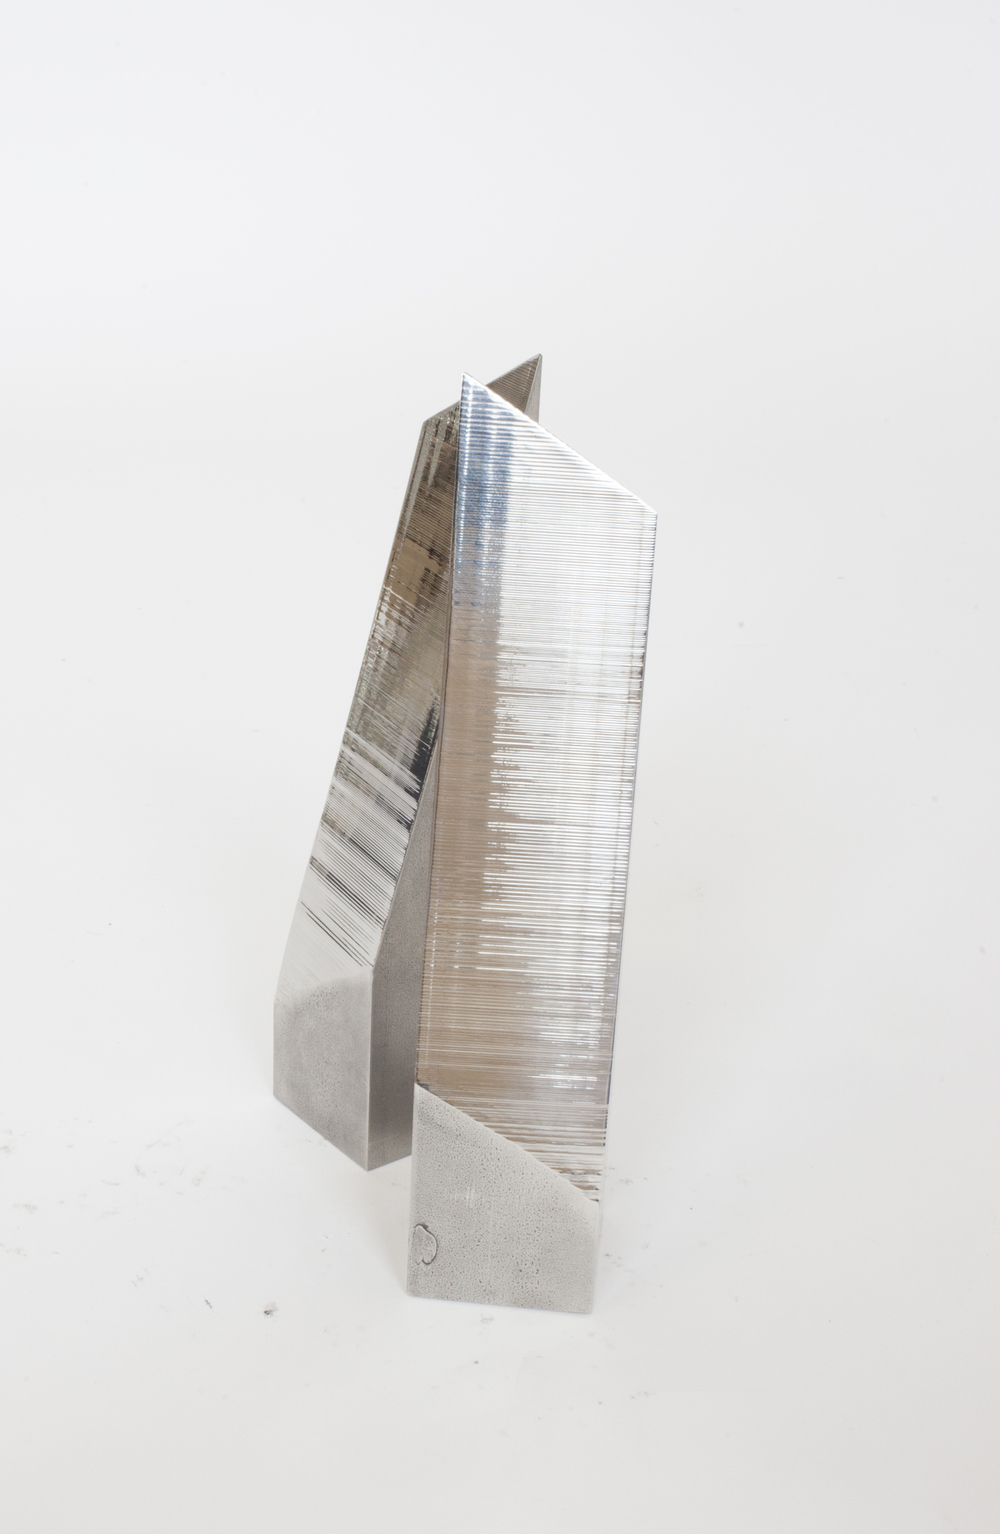 "WEDGE BOOKENDS    1 of 1  STAINLESS STEEL 6.5"" - 9"" - 9.5"" - 10"" - 11""H x 2""W x 2""D   PDF   / 1STDIBS  IN STOCK / MADE TO ORDER"